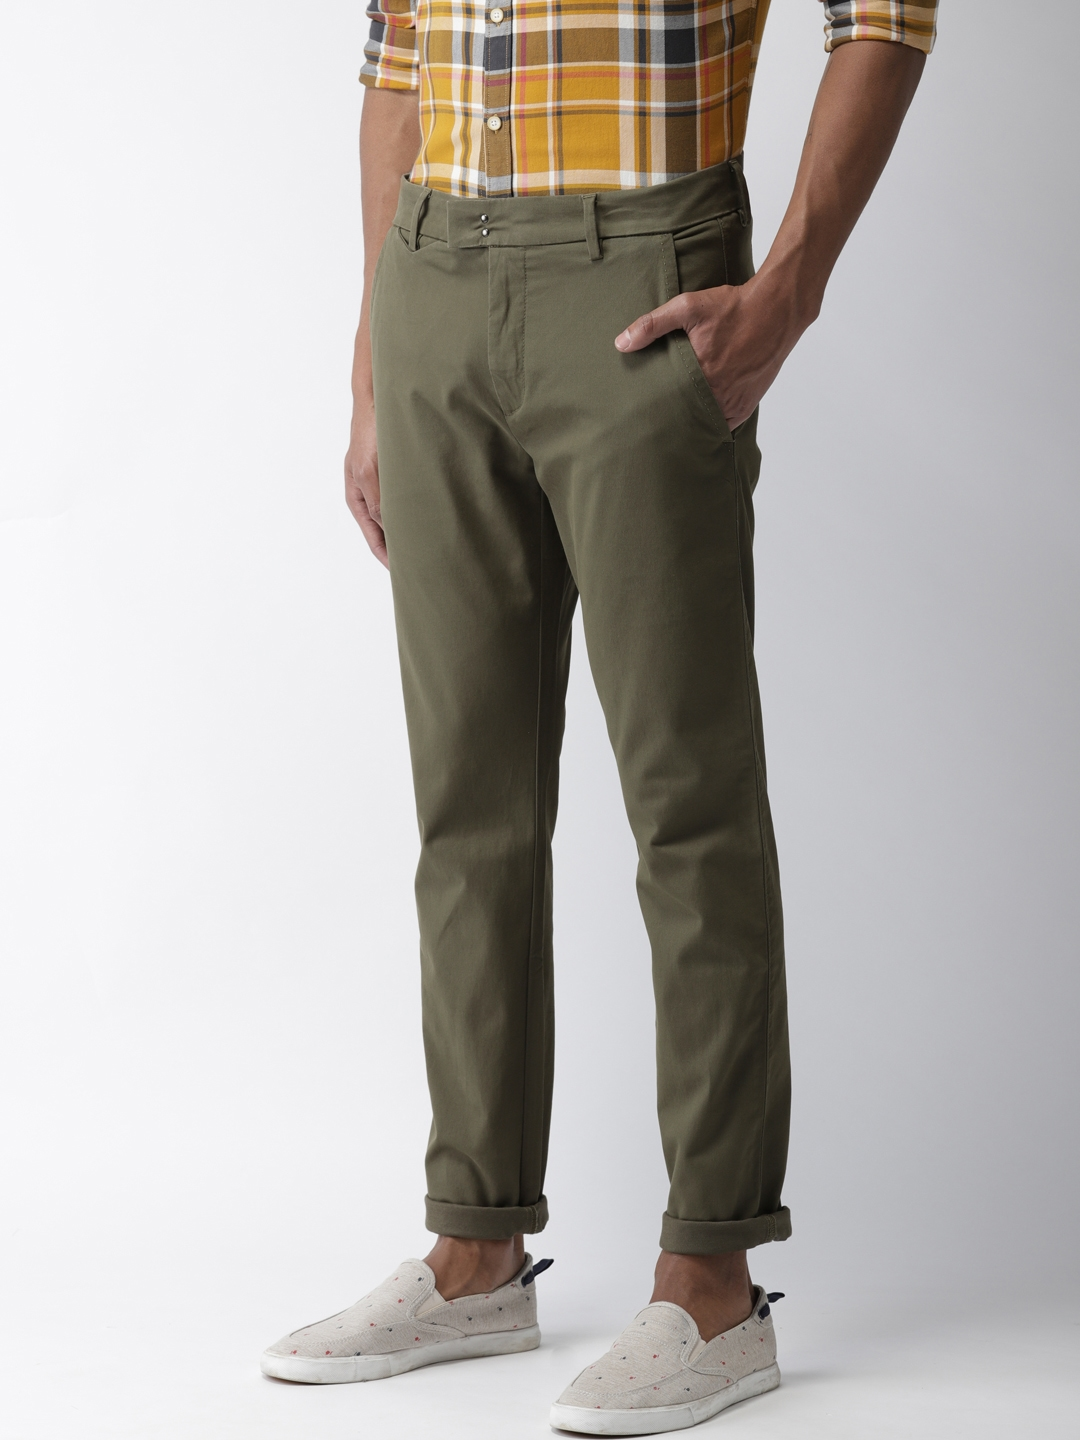 00784032 Buy Levis Men Olive Green 512 Slim Tapered Fit Solid Chinos ...